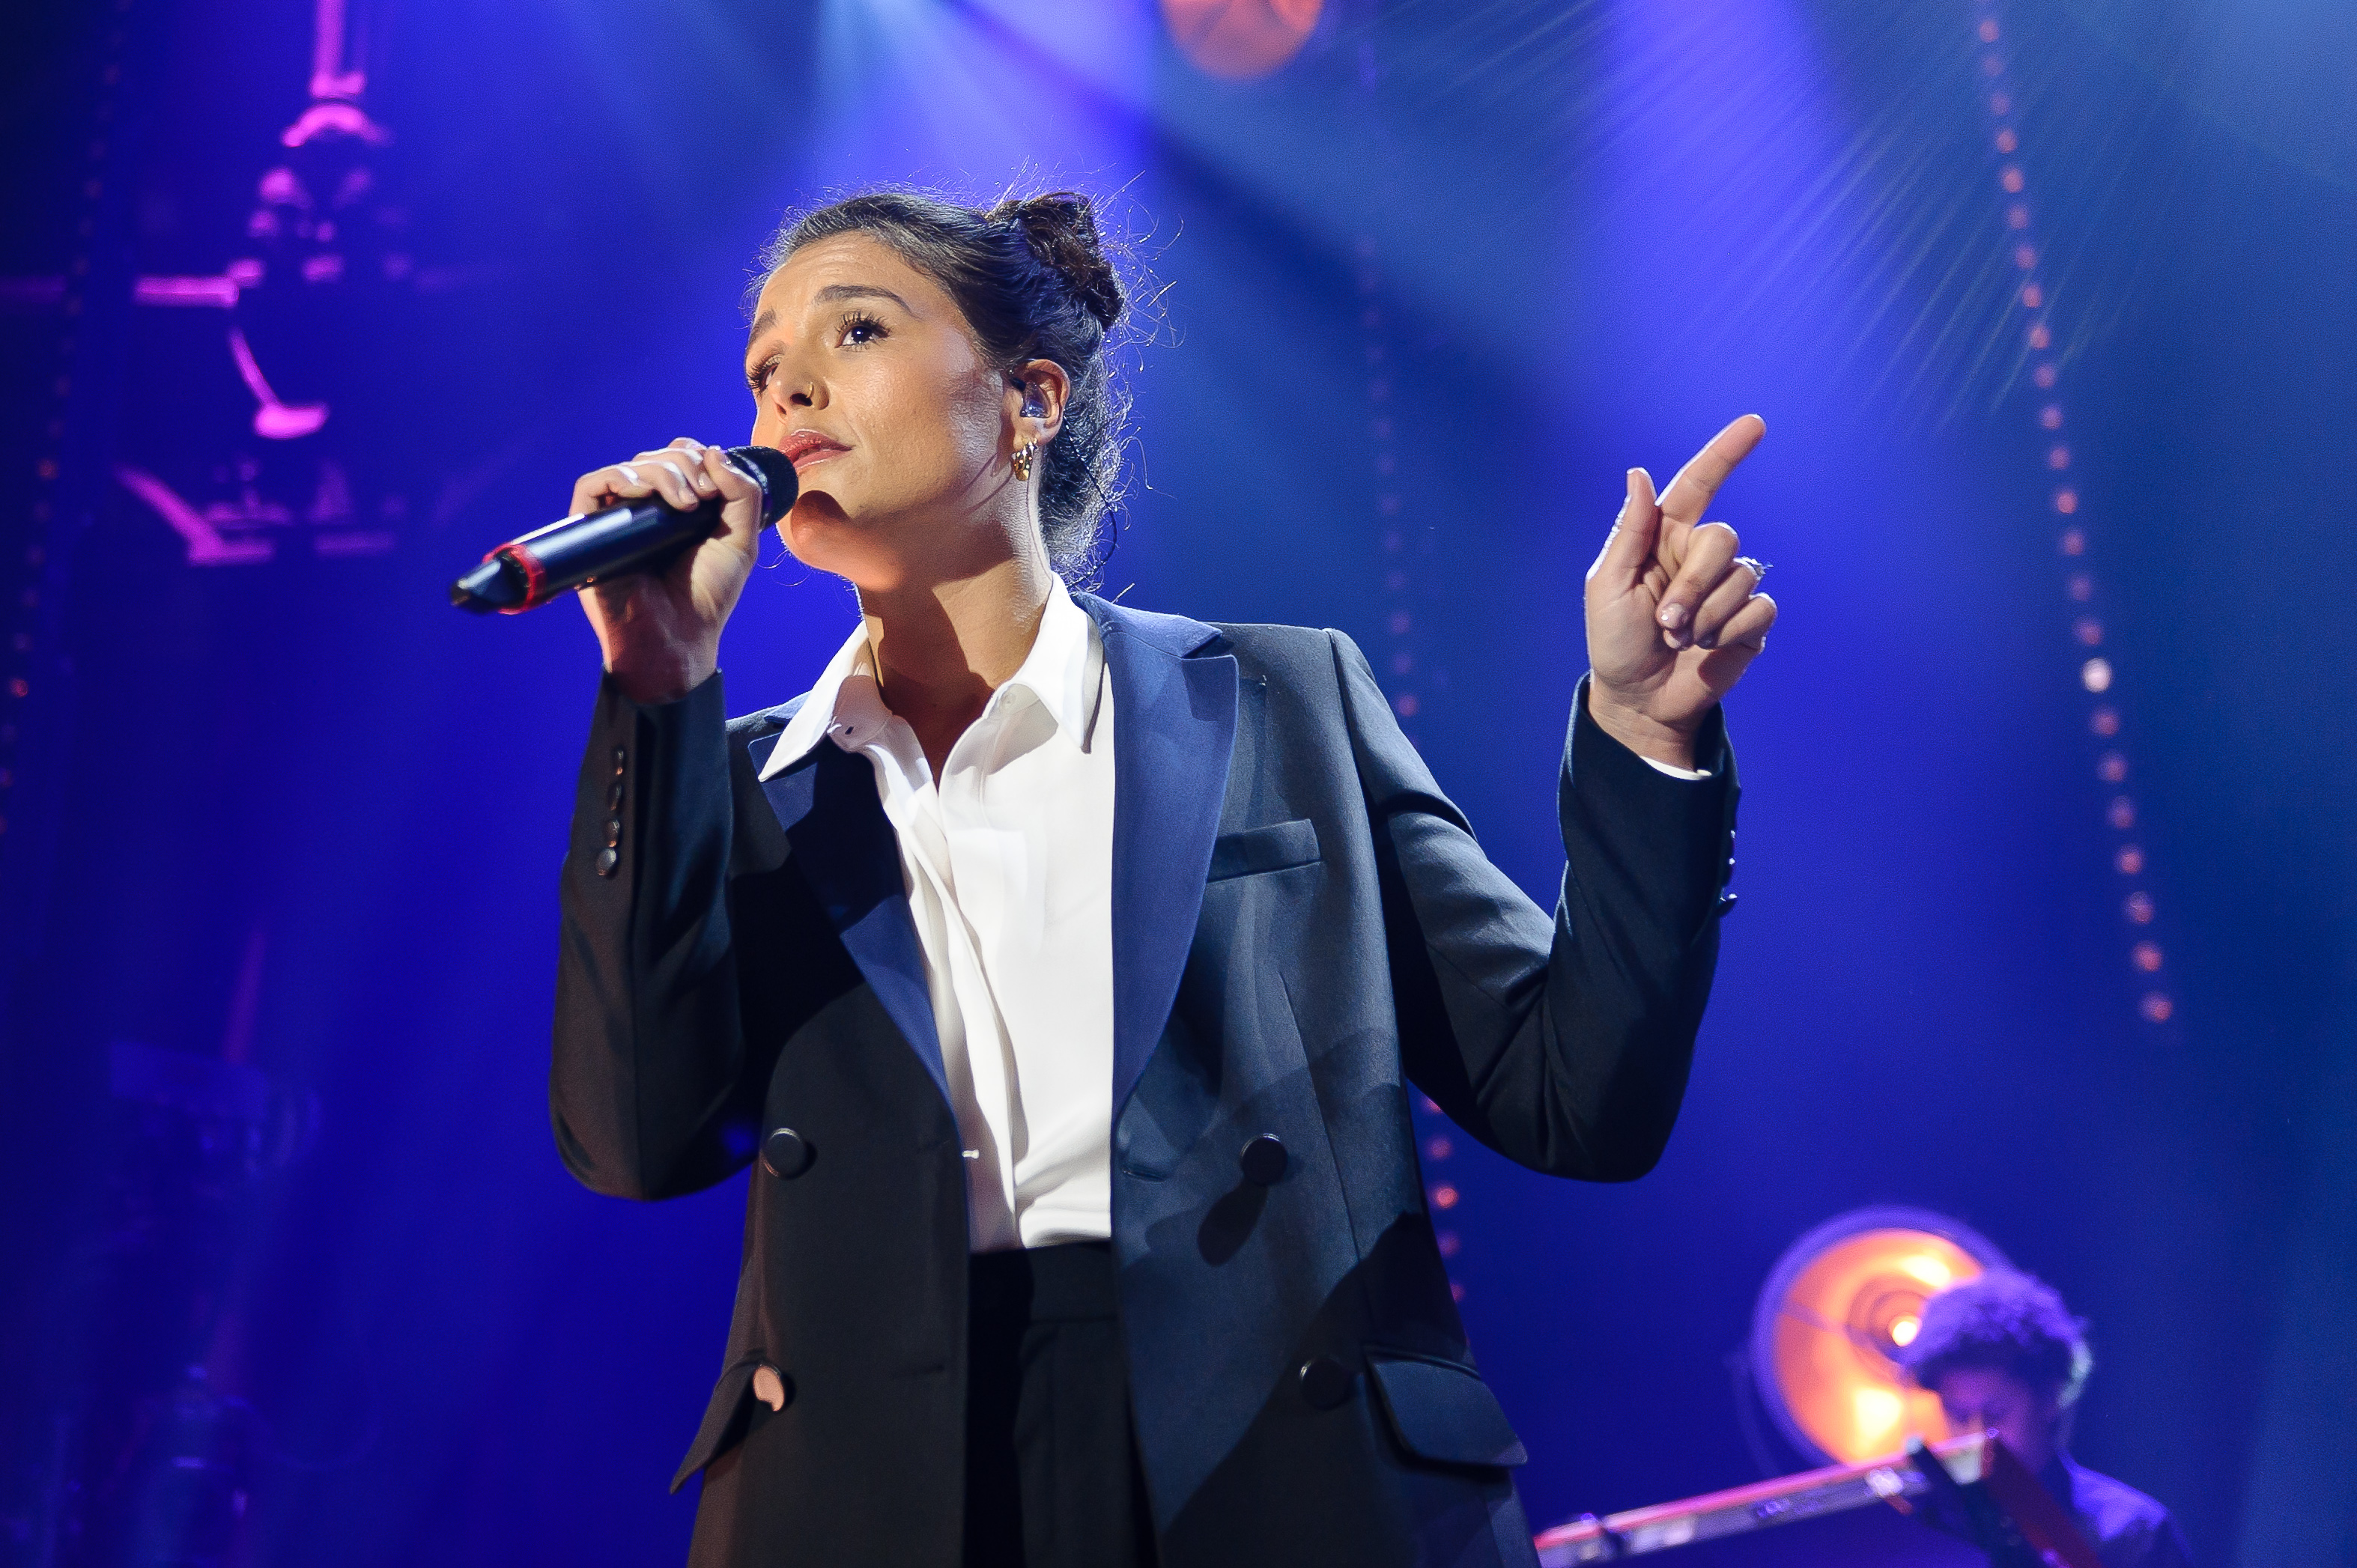 LONDON, UNITED KINGDOM - MAY 30: Jessie Ware performs 'Leave your lover' on stage with Sam Smith at The Roundhouse on May 30,